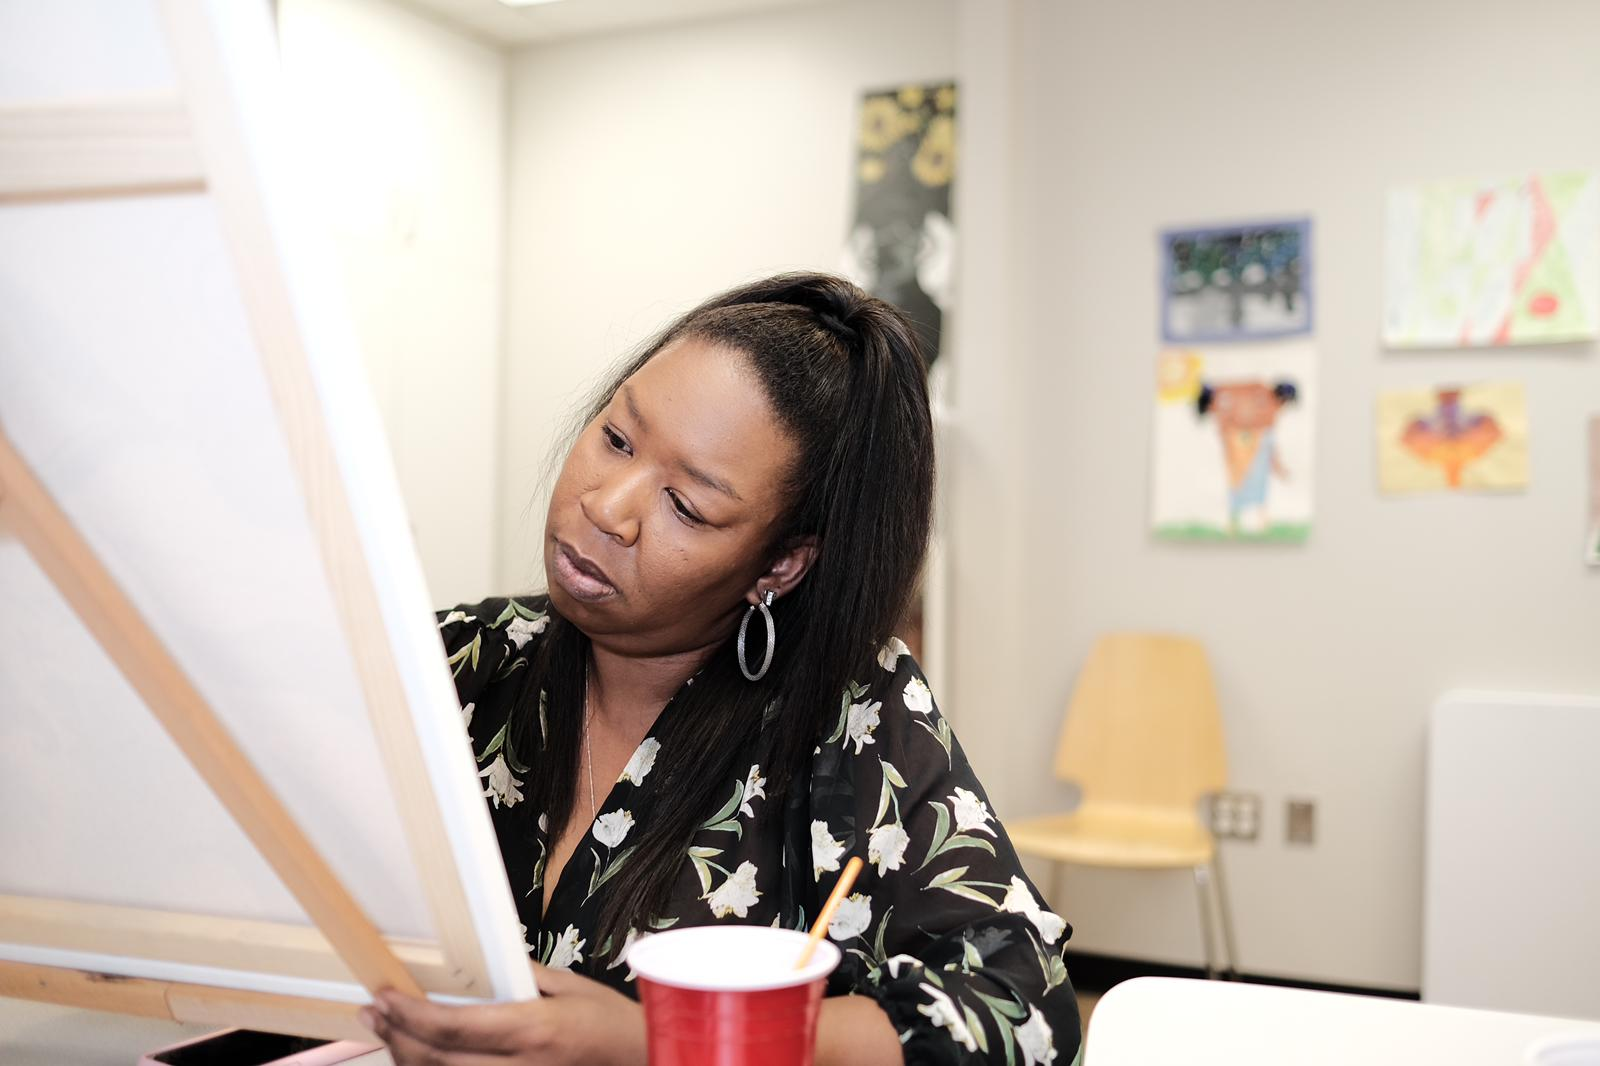 Montgomery County native and artist, teacher, coach and trainer Tychelle Mosely works at the FAsMarketplace.